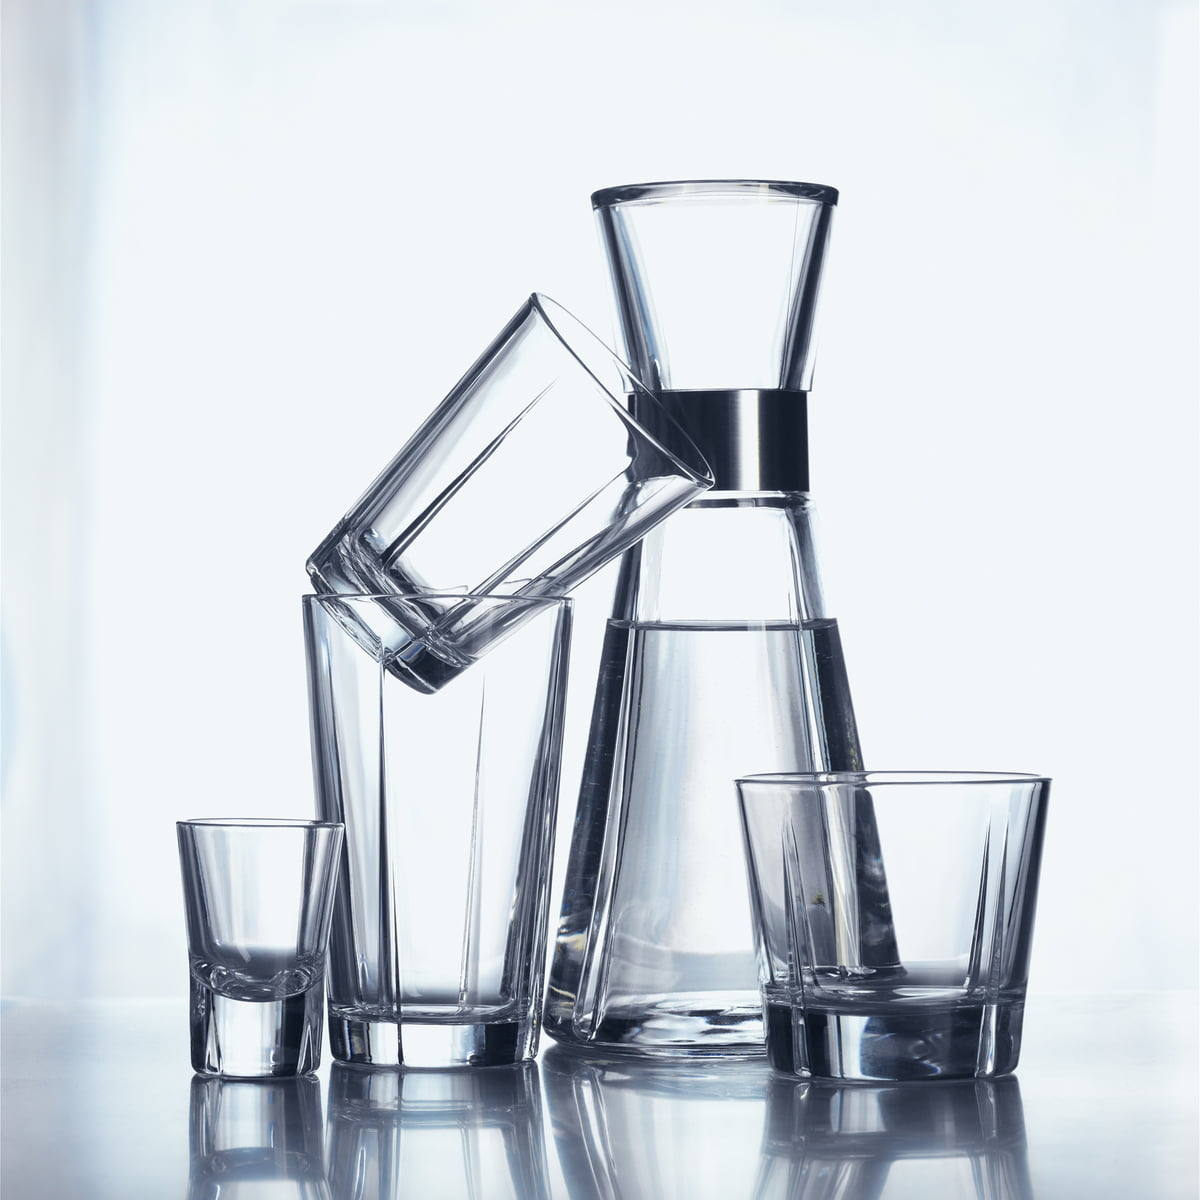 The Water Carafe with glasses by Erik Bagger